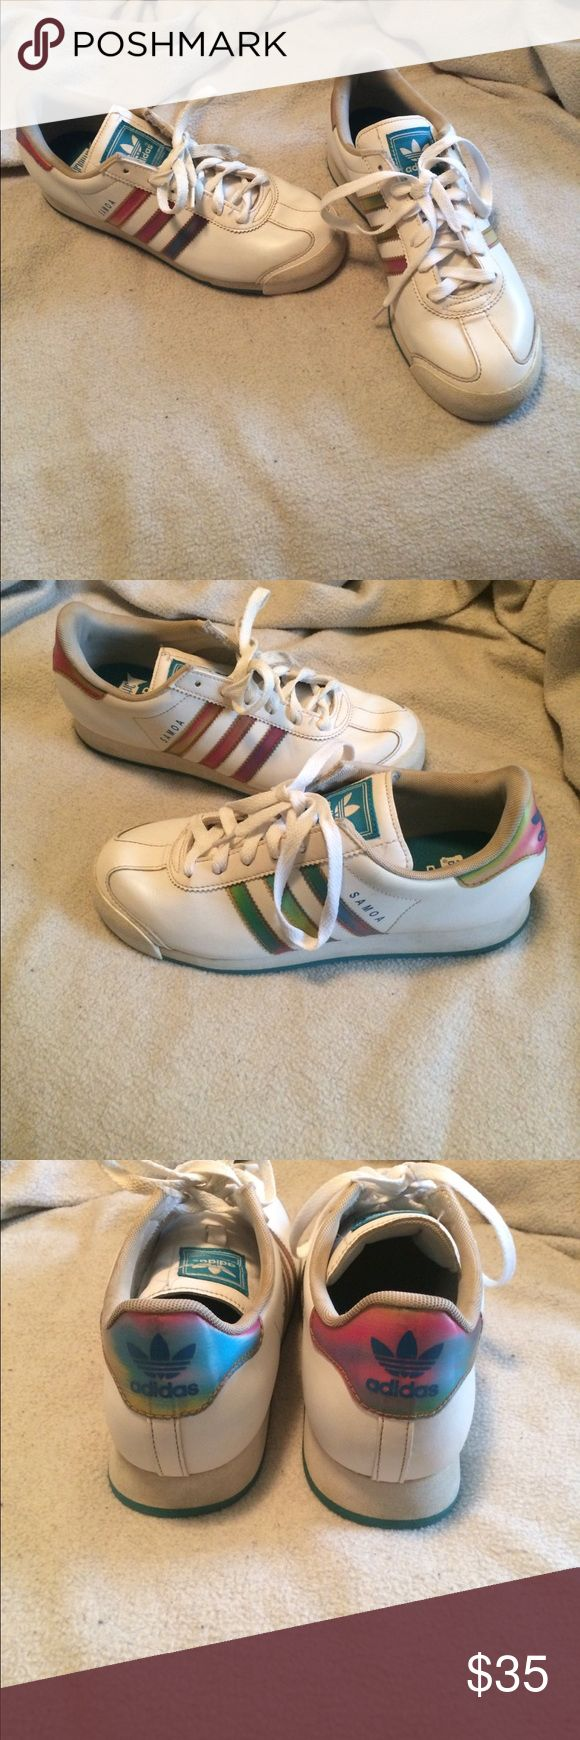 Adidas Soma Sneakers Size 5.5 Beautiful white colored adidas, with color changing stripes! These shoes are awesome! They are gently worn, could clean up nicely. Size 5.5 adidas Shoes Sneakers